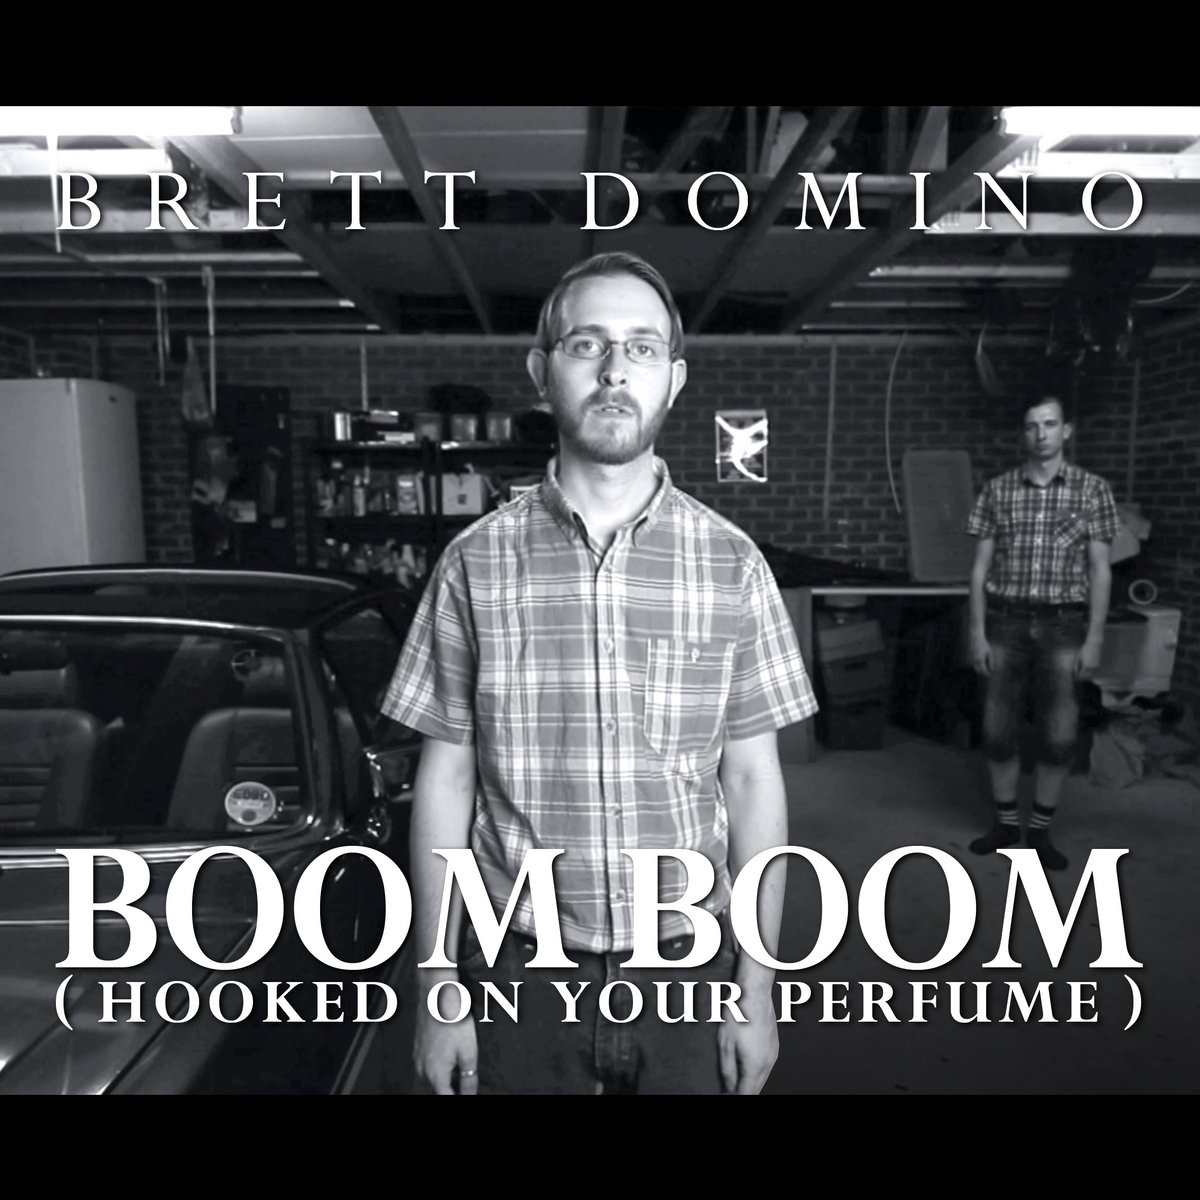 Boom Boom (Hooked On Your Perfume) [FREE DOWNLOAD] | Brett